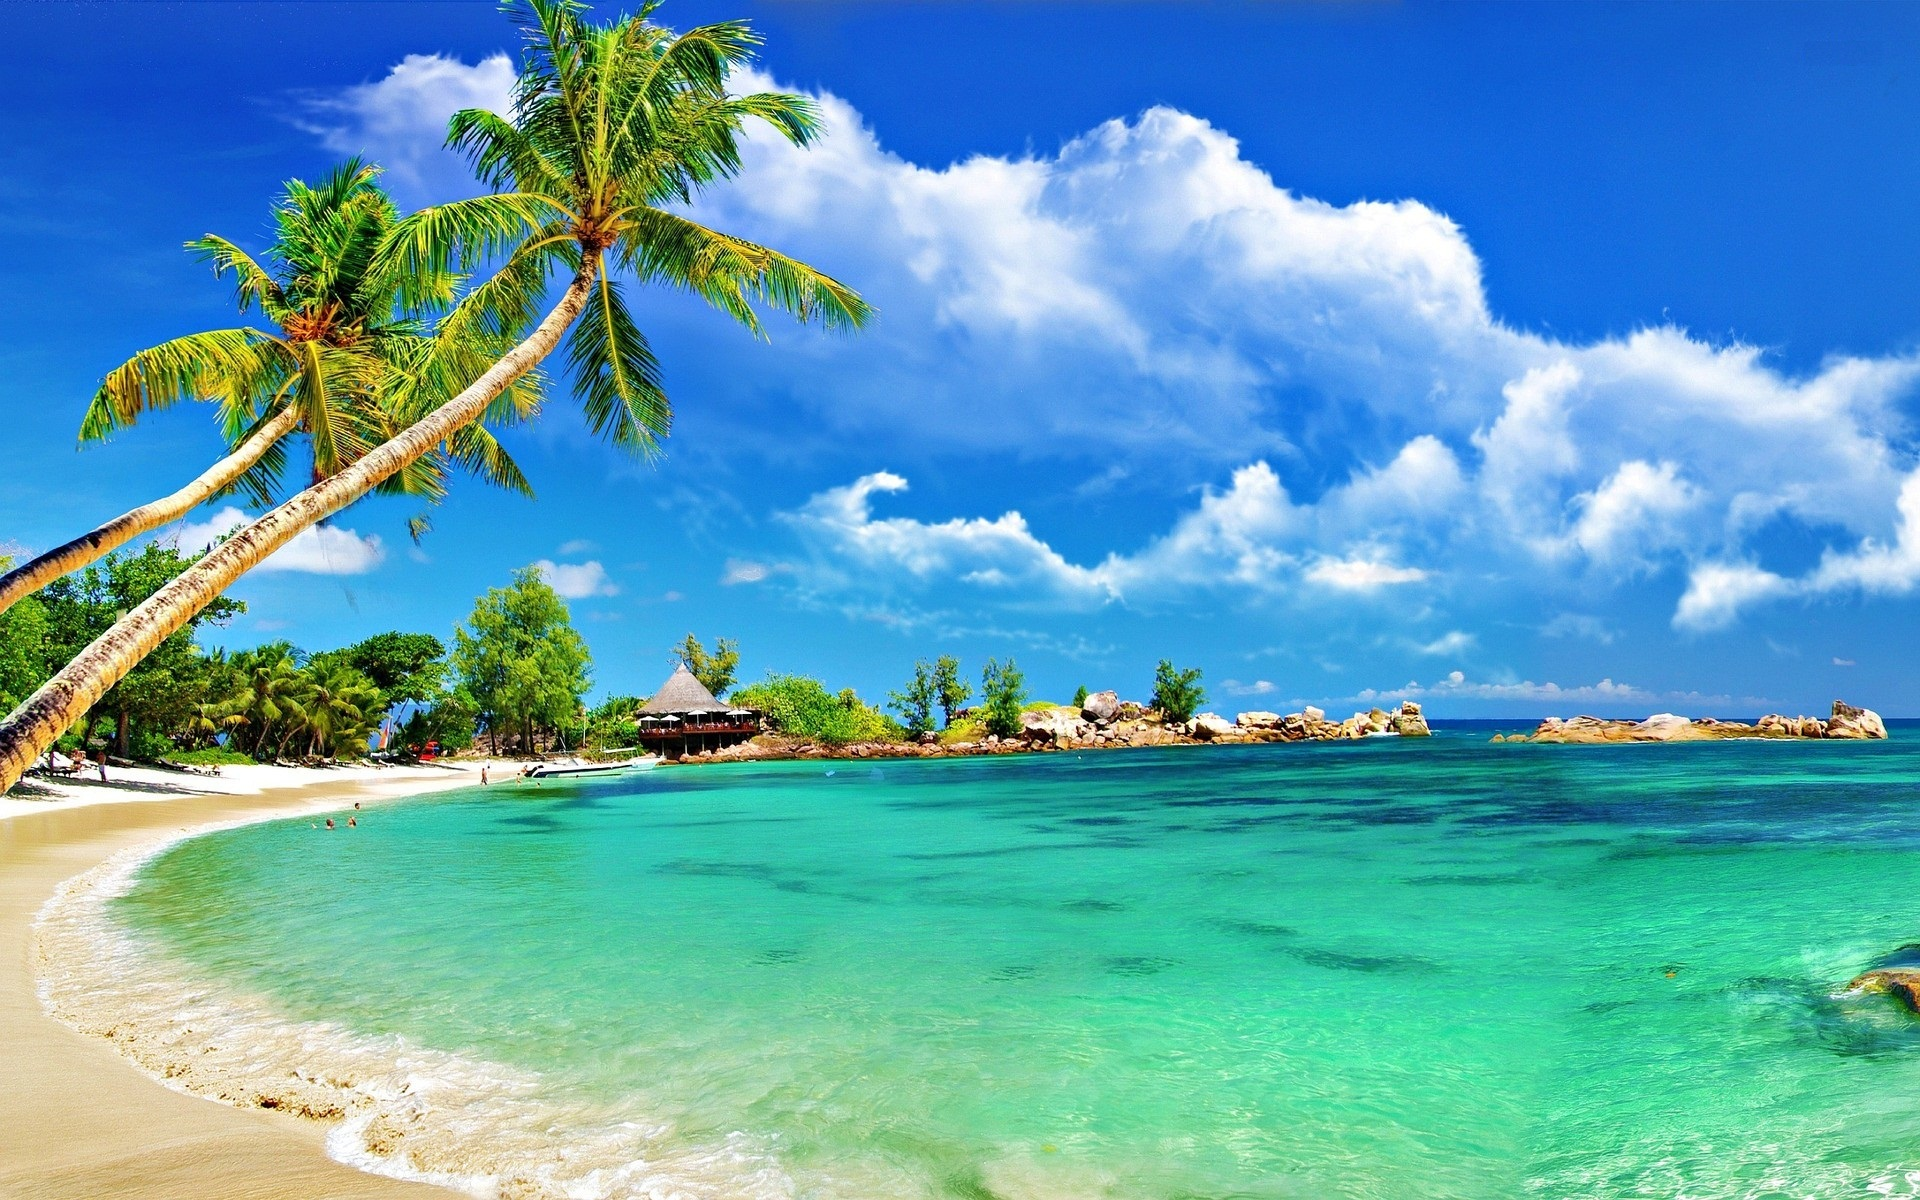 Tropical Beach HD Wallpaper Tropical Beach Images 1920x1200